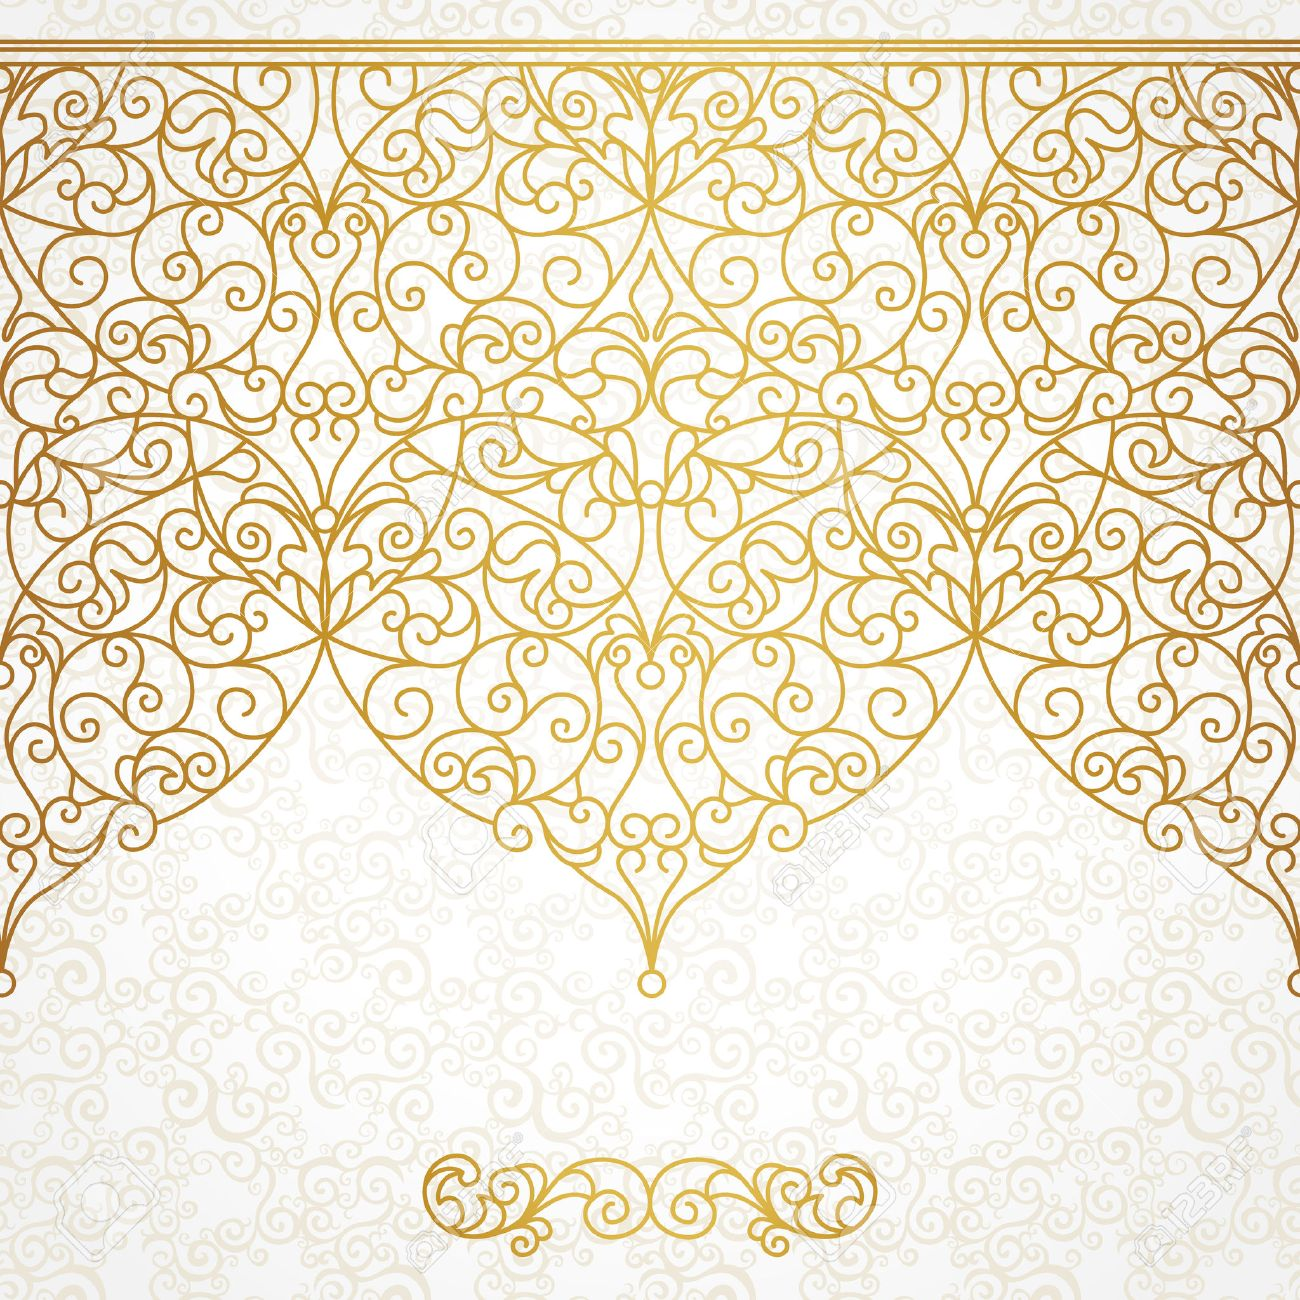 Vector ornate seamless border in Eastern style. Line art element for design, place for text. Ornamental vintage frame for wedding invitations and greeting cards. Traditional gold decor. - 40401095